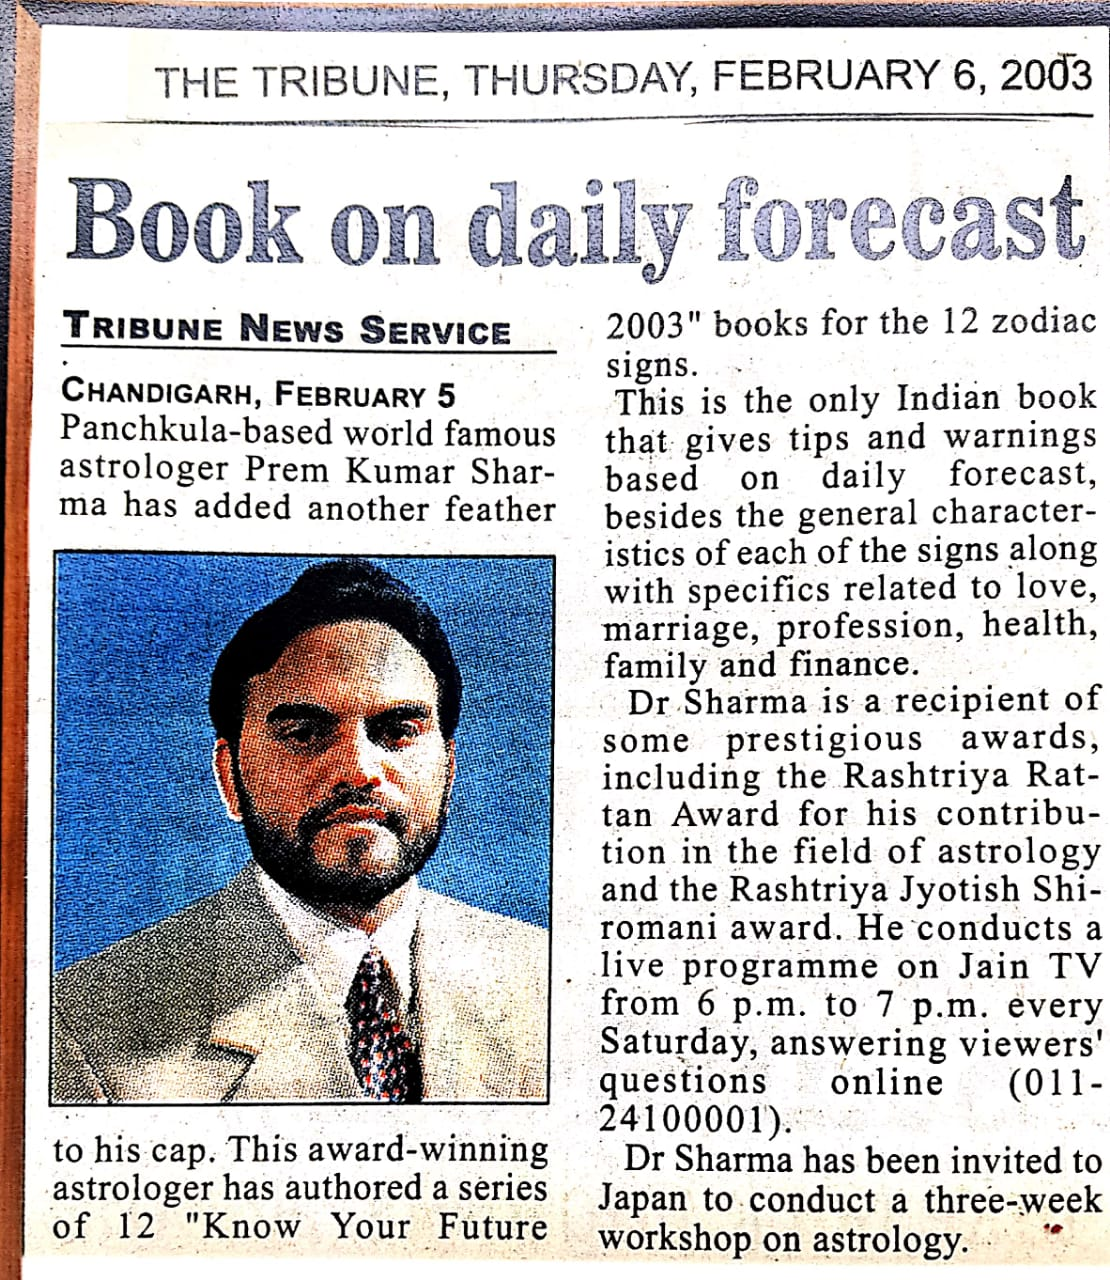 Book on daily forecast